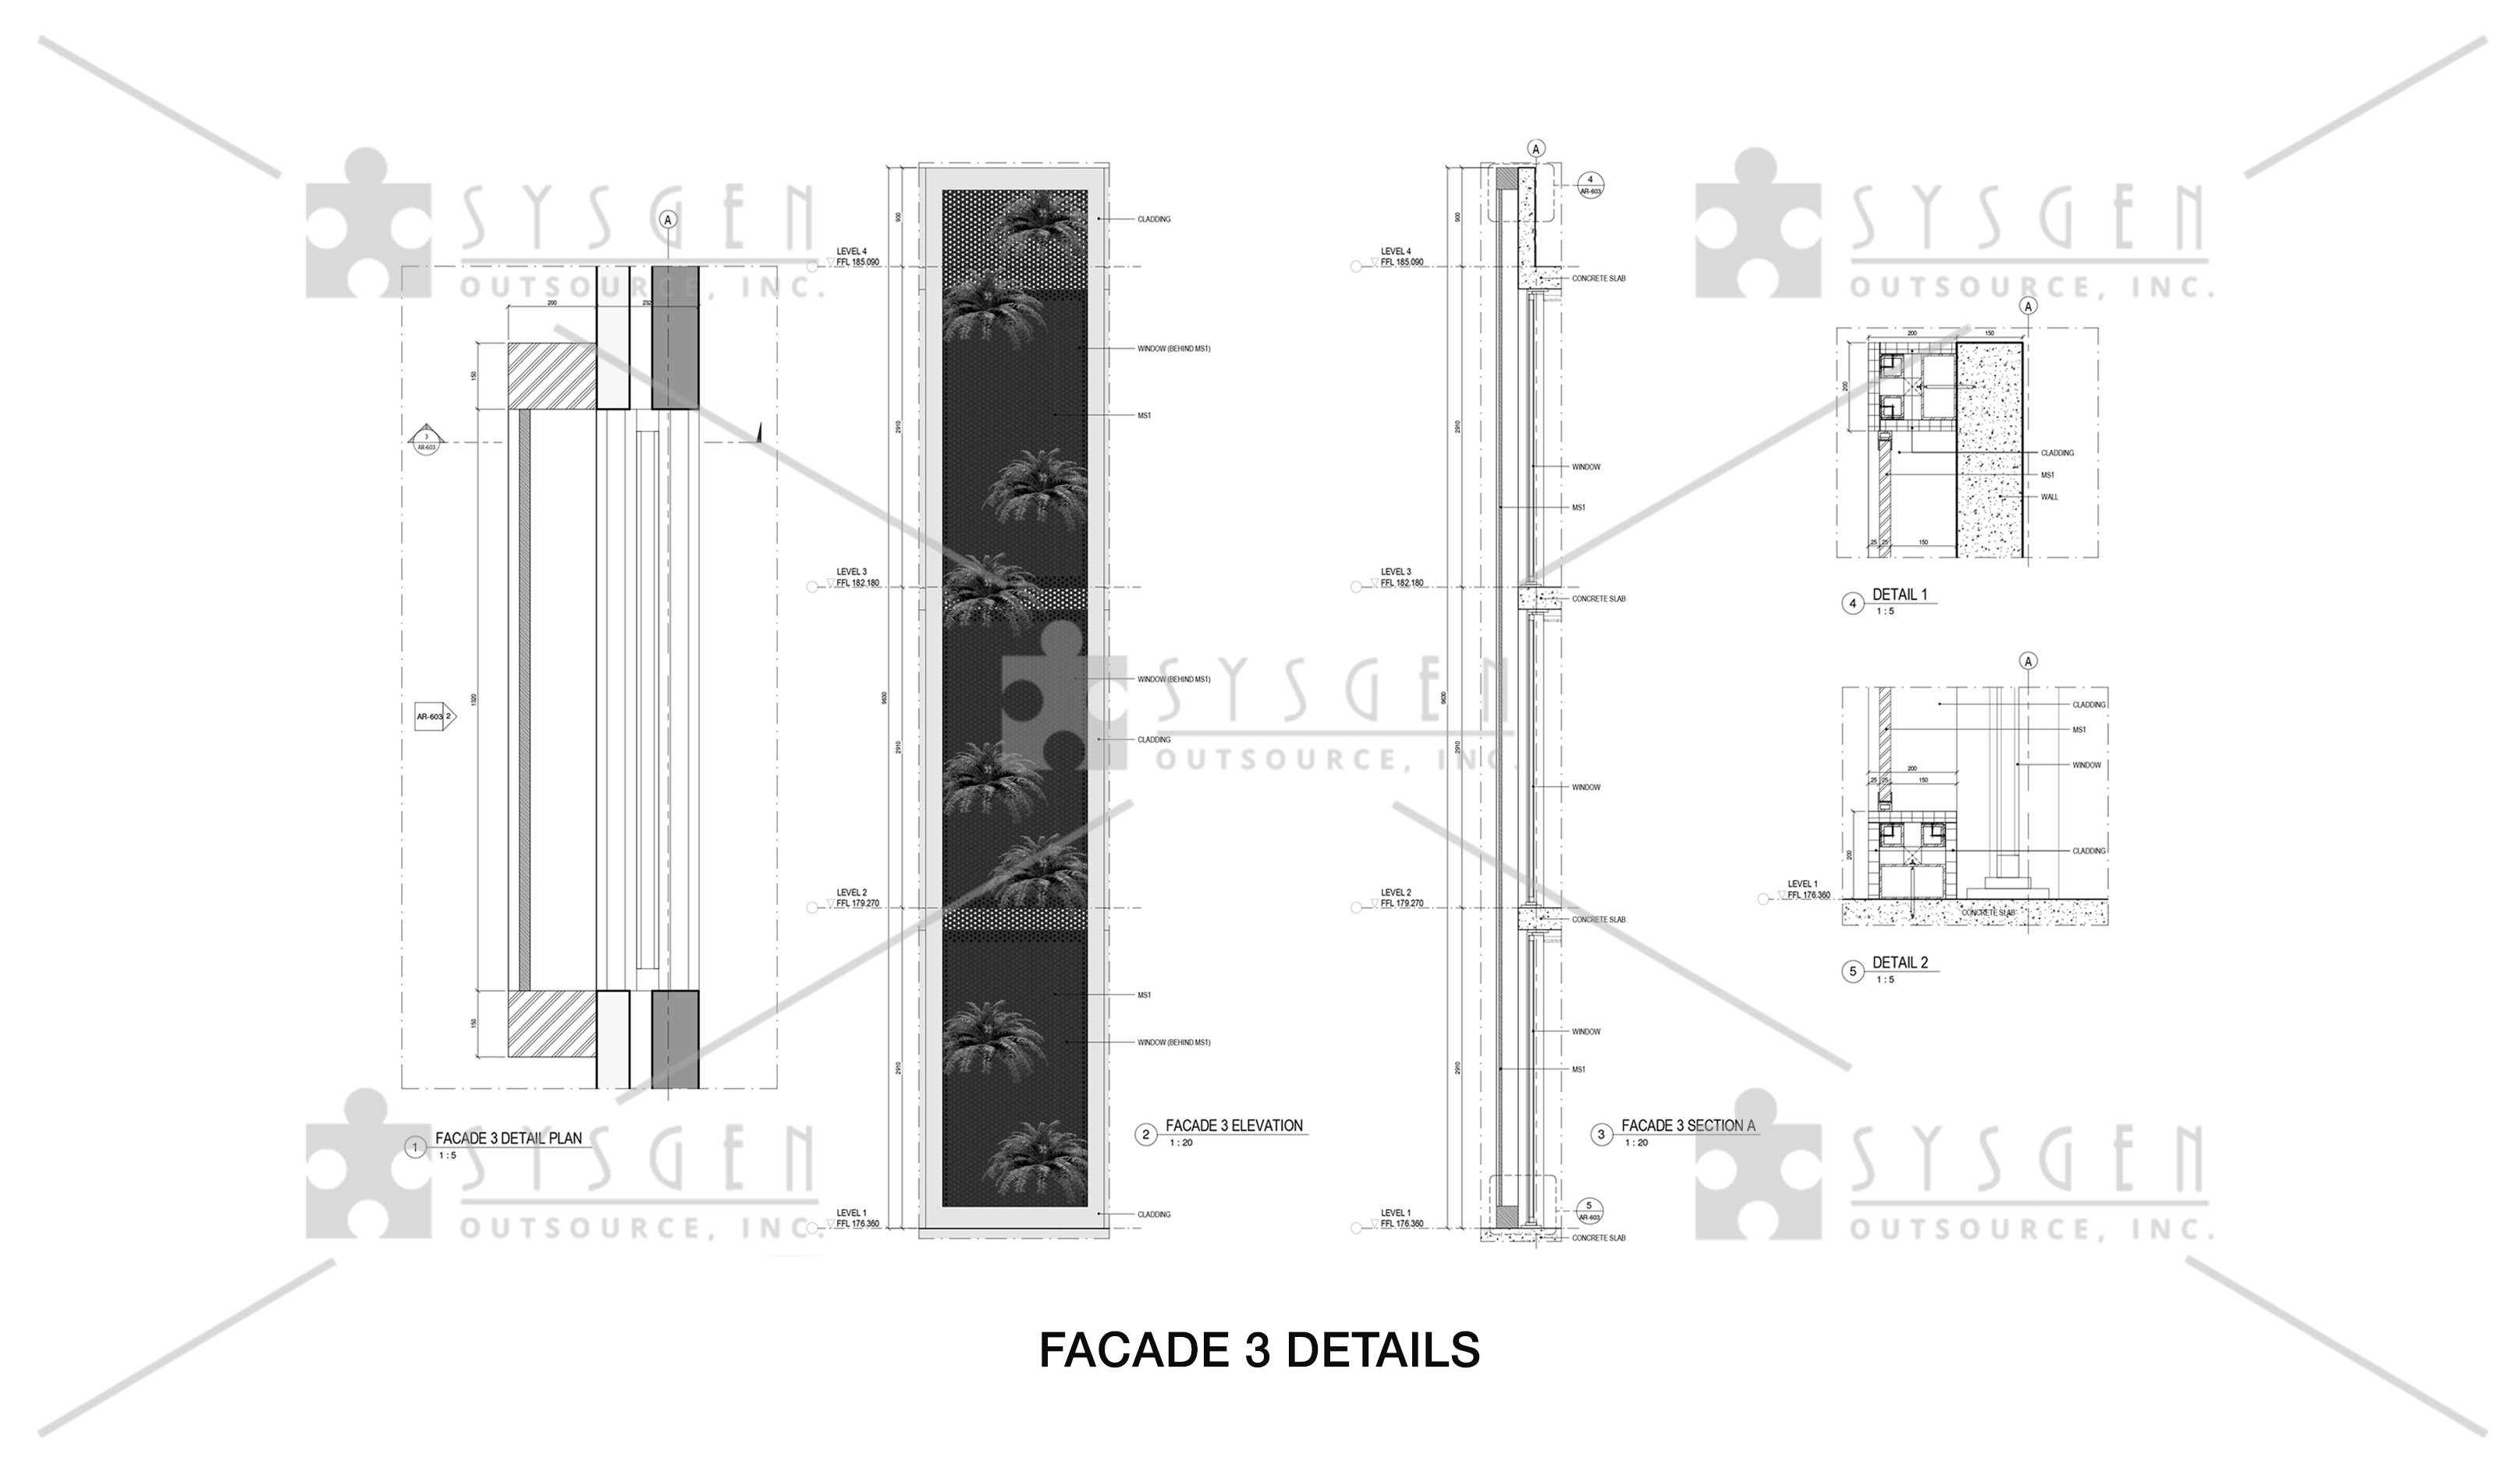 sysgen-outsource-cad-outsourcing-services-cad-conversion-revit-4-storey-residential21